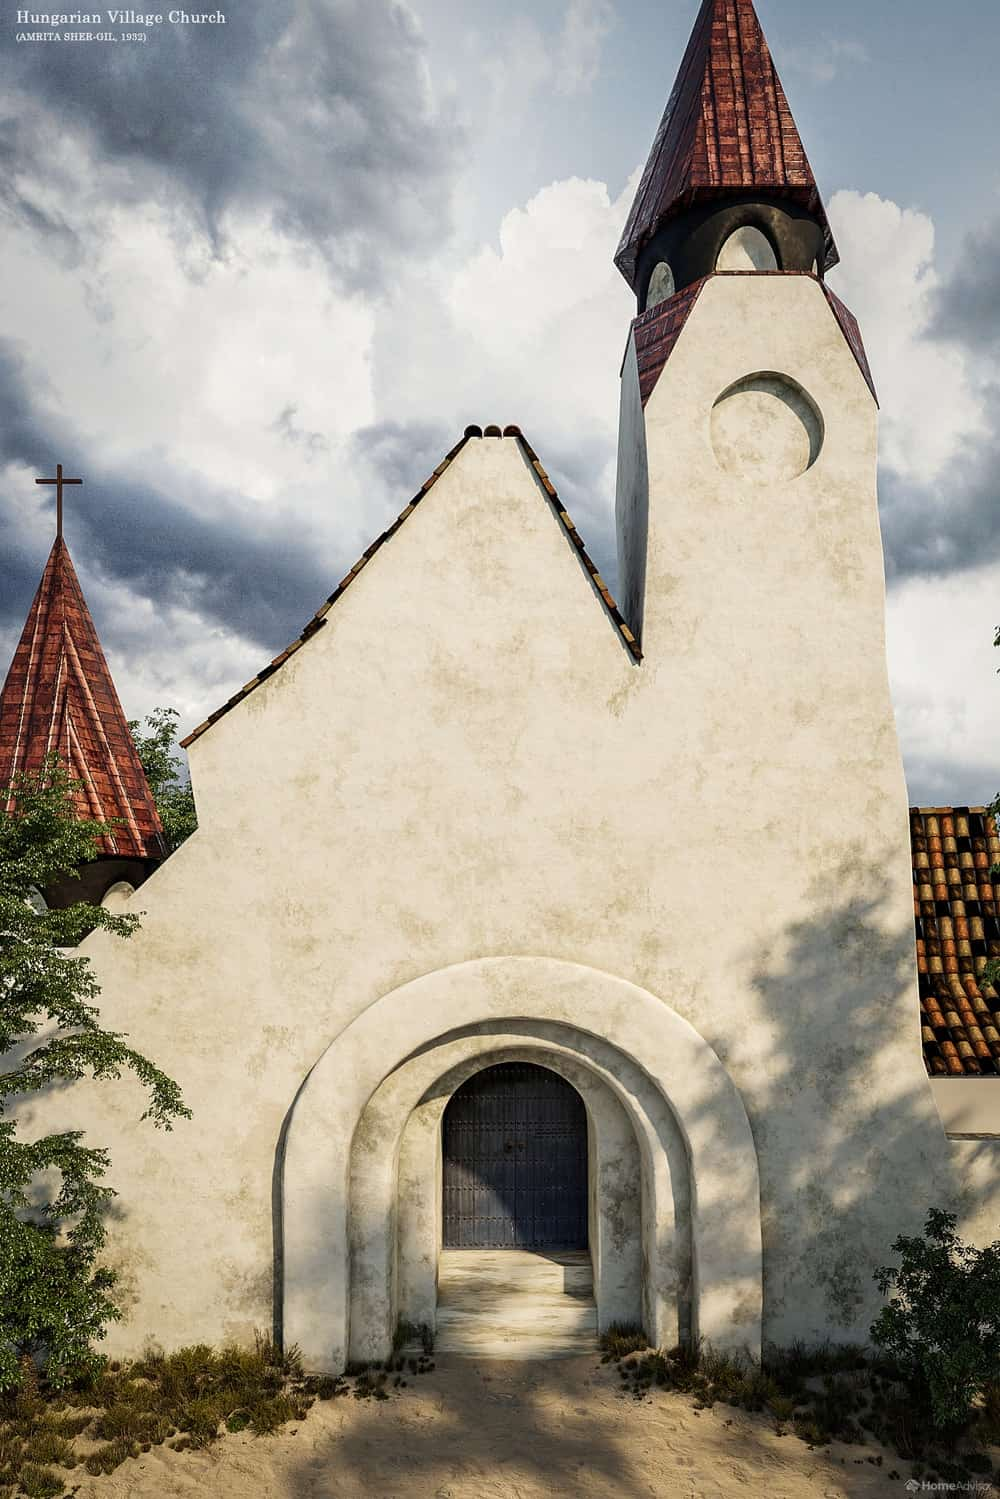 HomeAdvisor's real-life rendition of Hungarian Village Church by Amrita Sher-Gil.